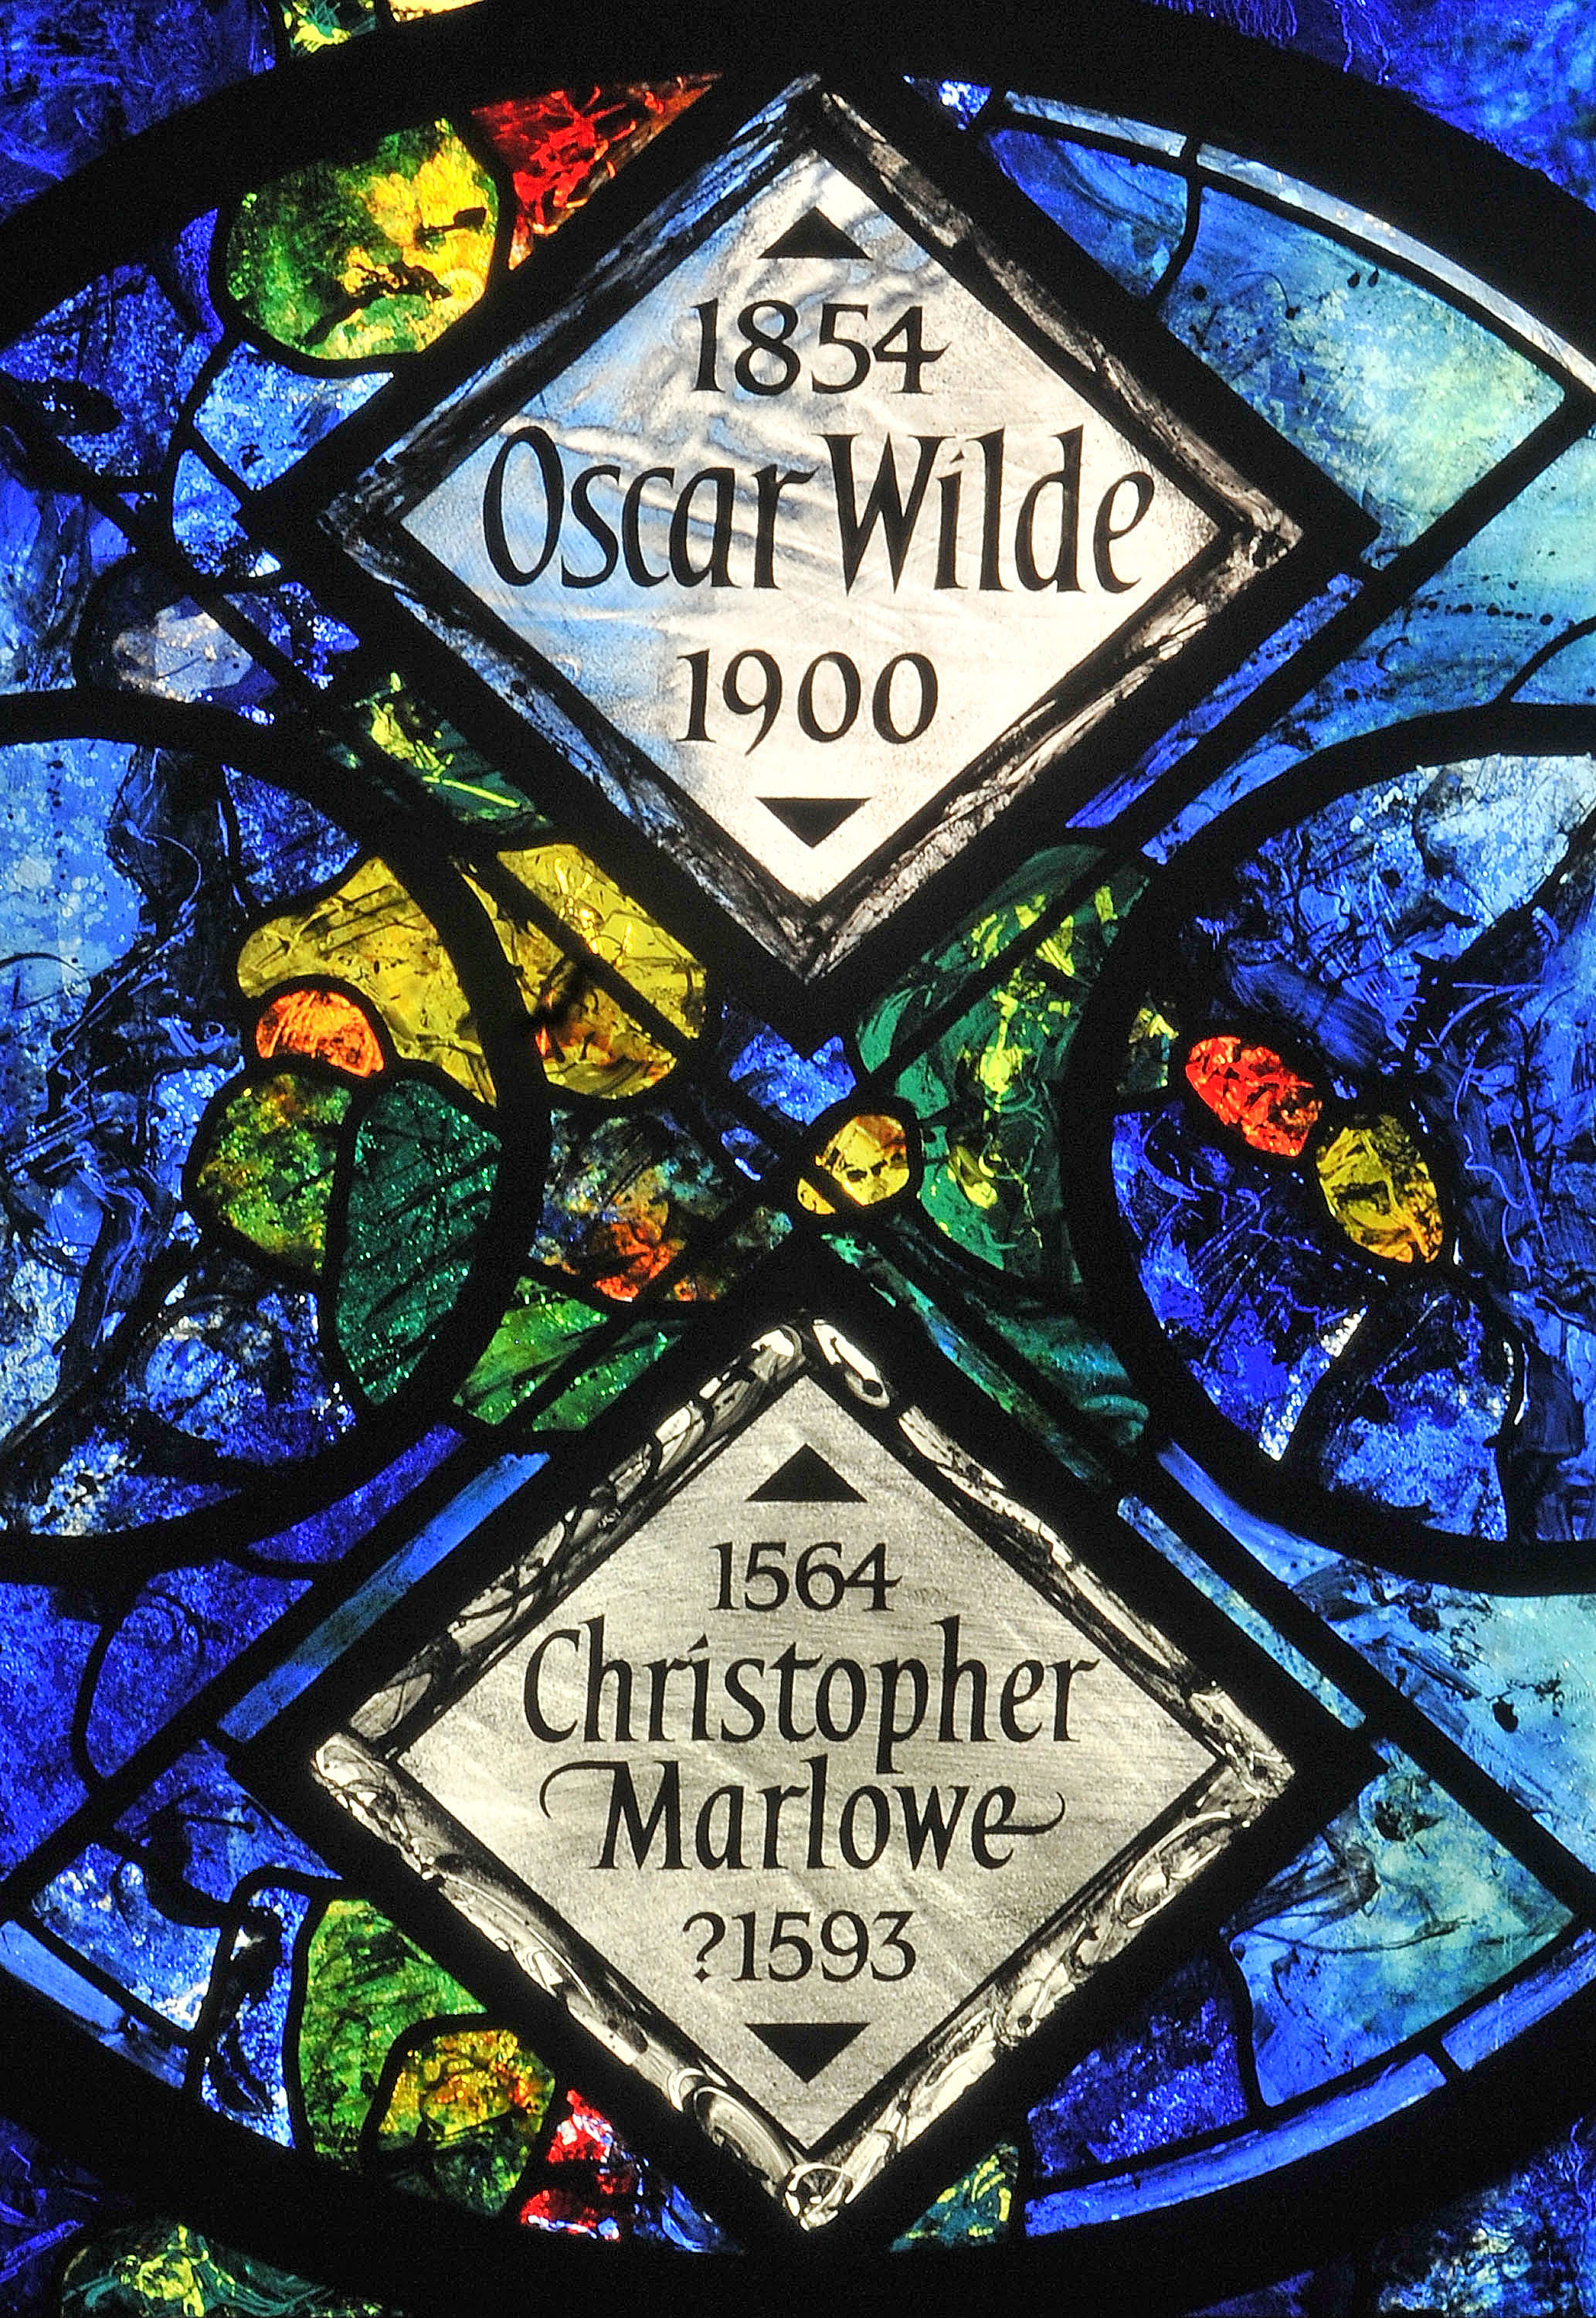 Memorial window to Oscar WIlde and Christopher Marlowe